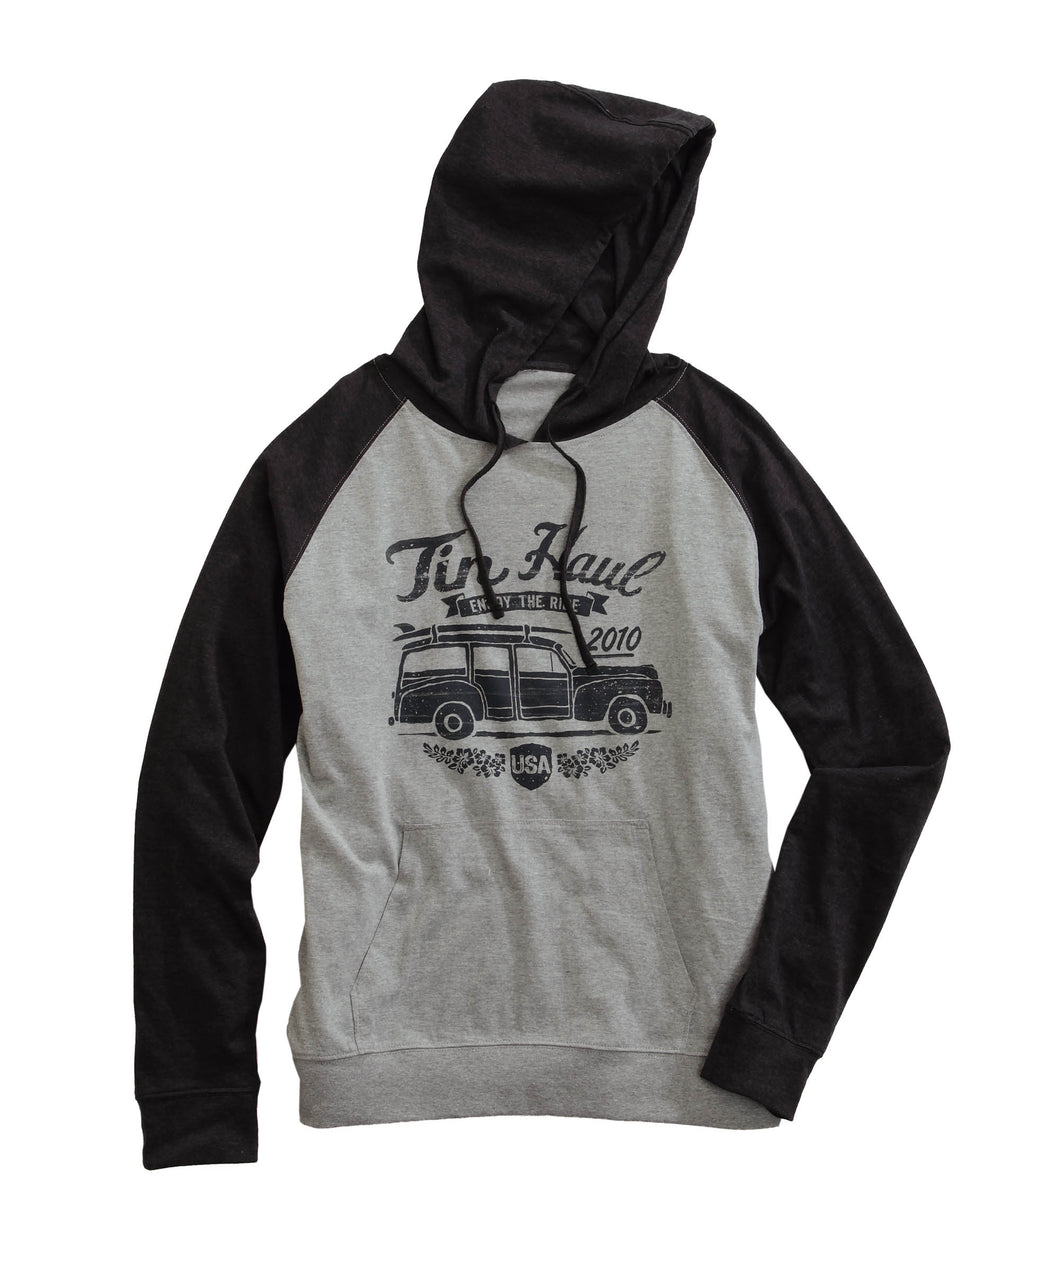 Tin Haul Hoodies Tinhaul Mens Jacket Color Block Hoodie With Car On Front